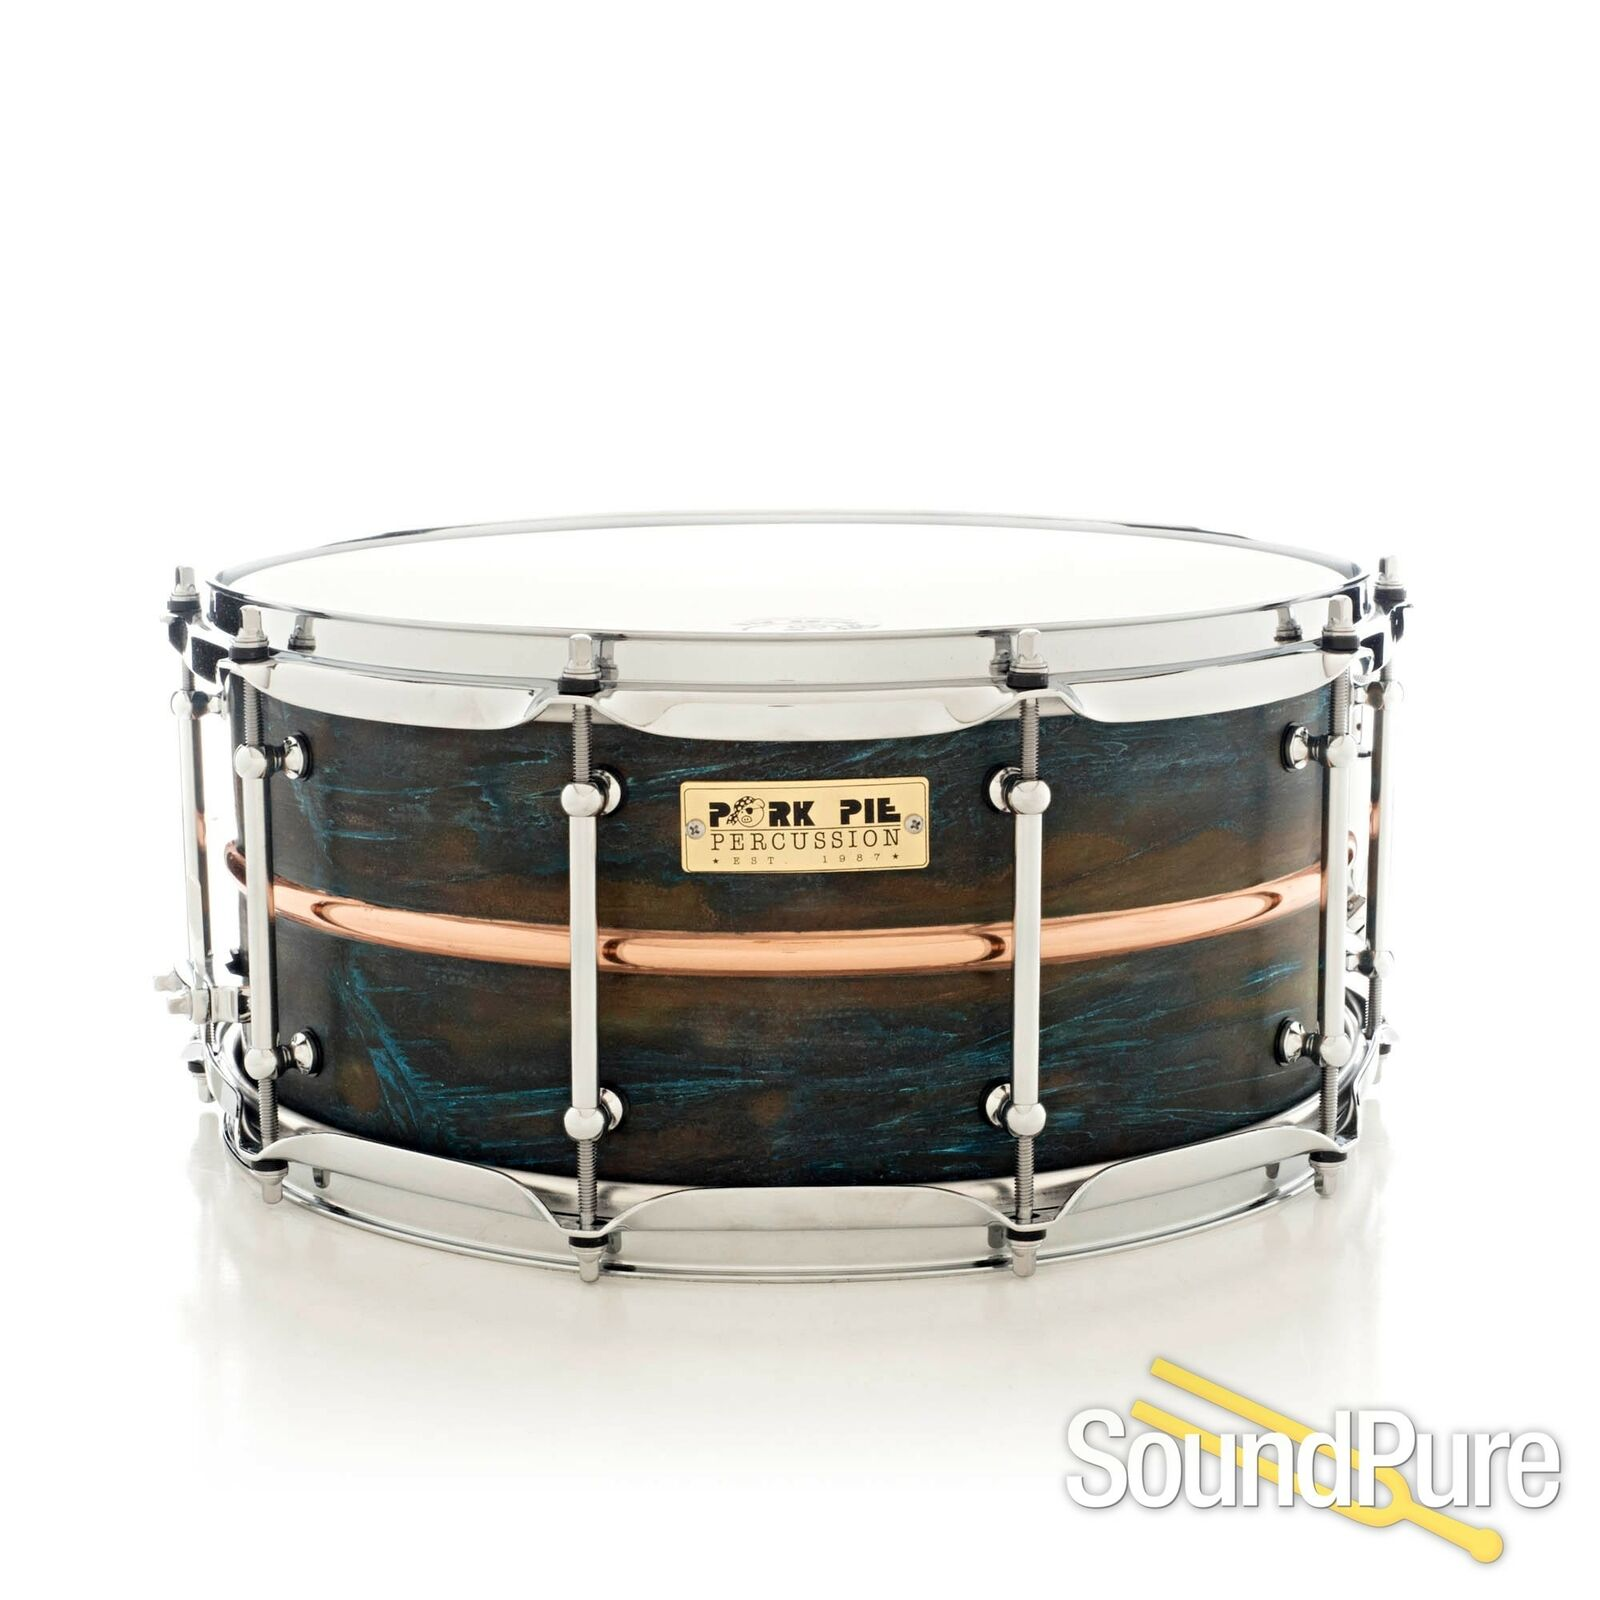 Pork Pie 6.5x14 Copper Patina Snare Drum